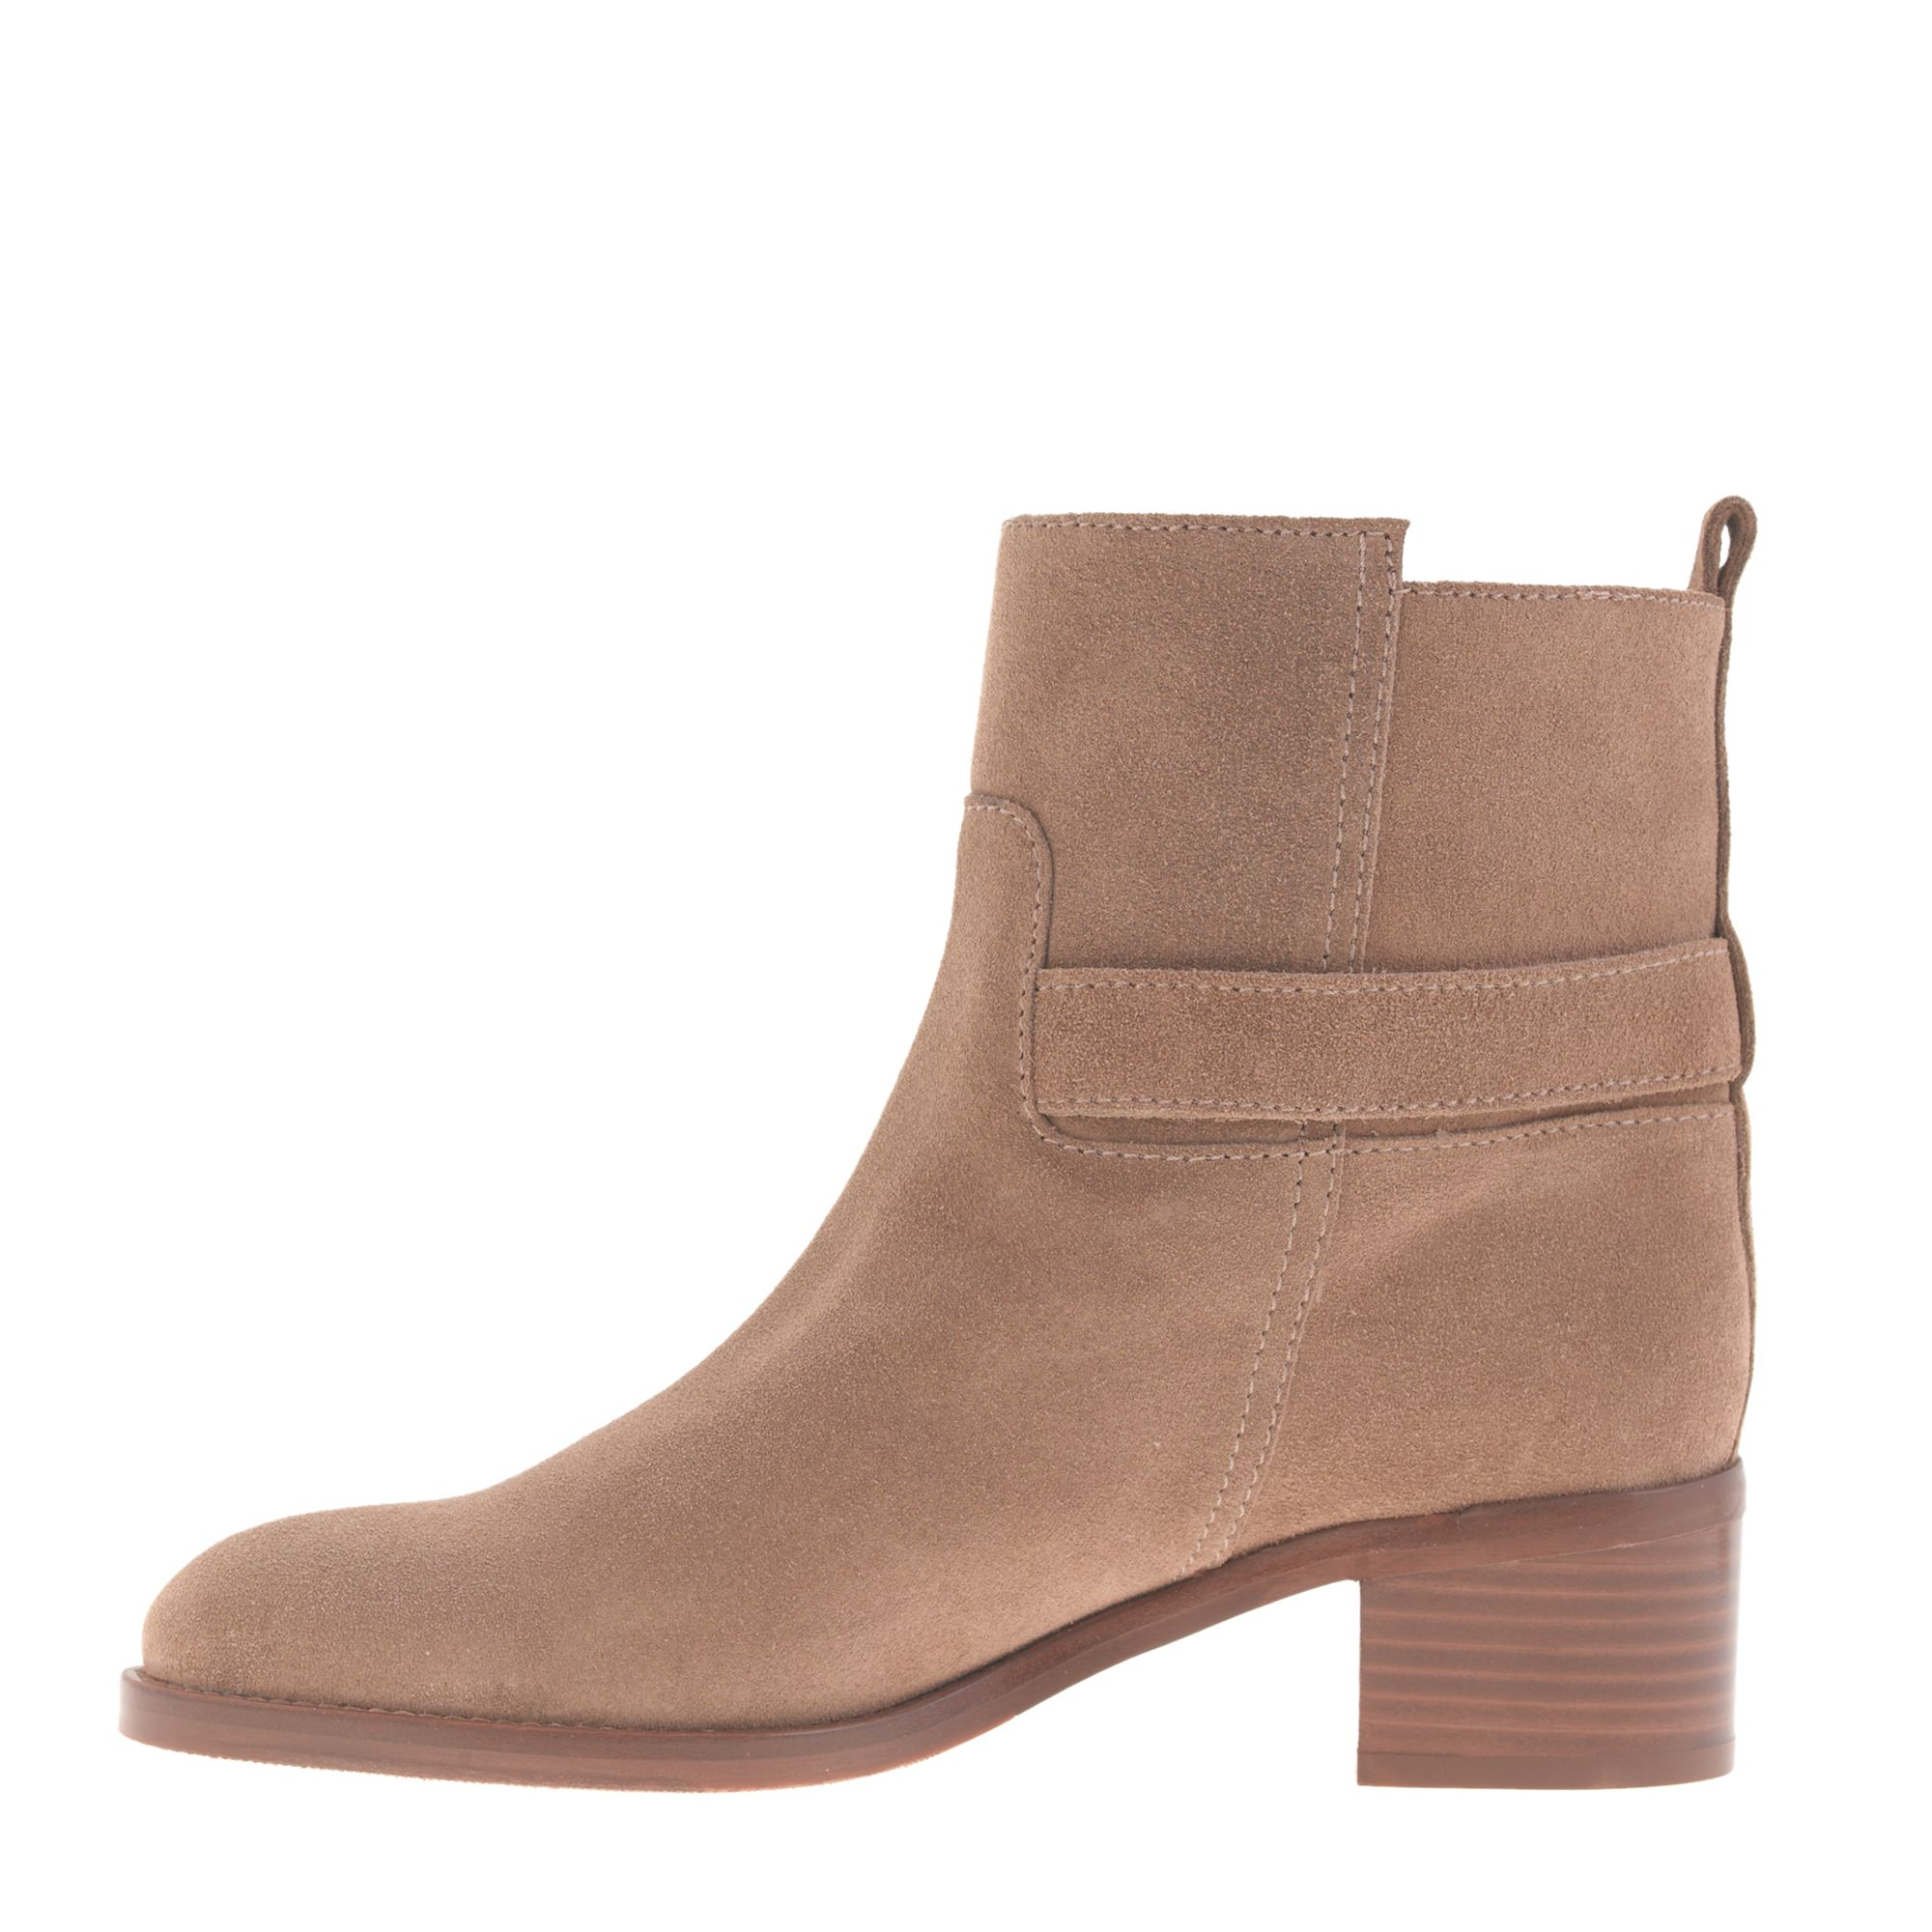 J.Crew Parker Suede Ankle Boots in Brown